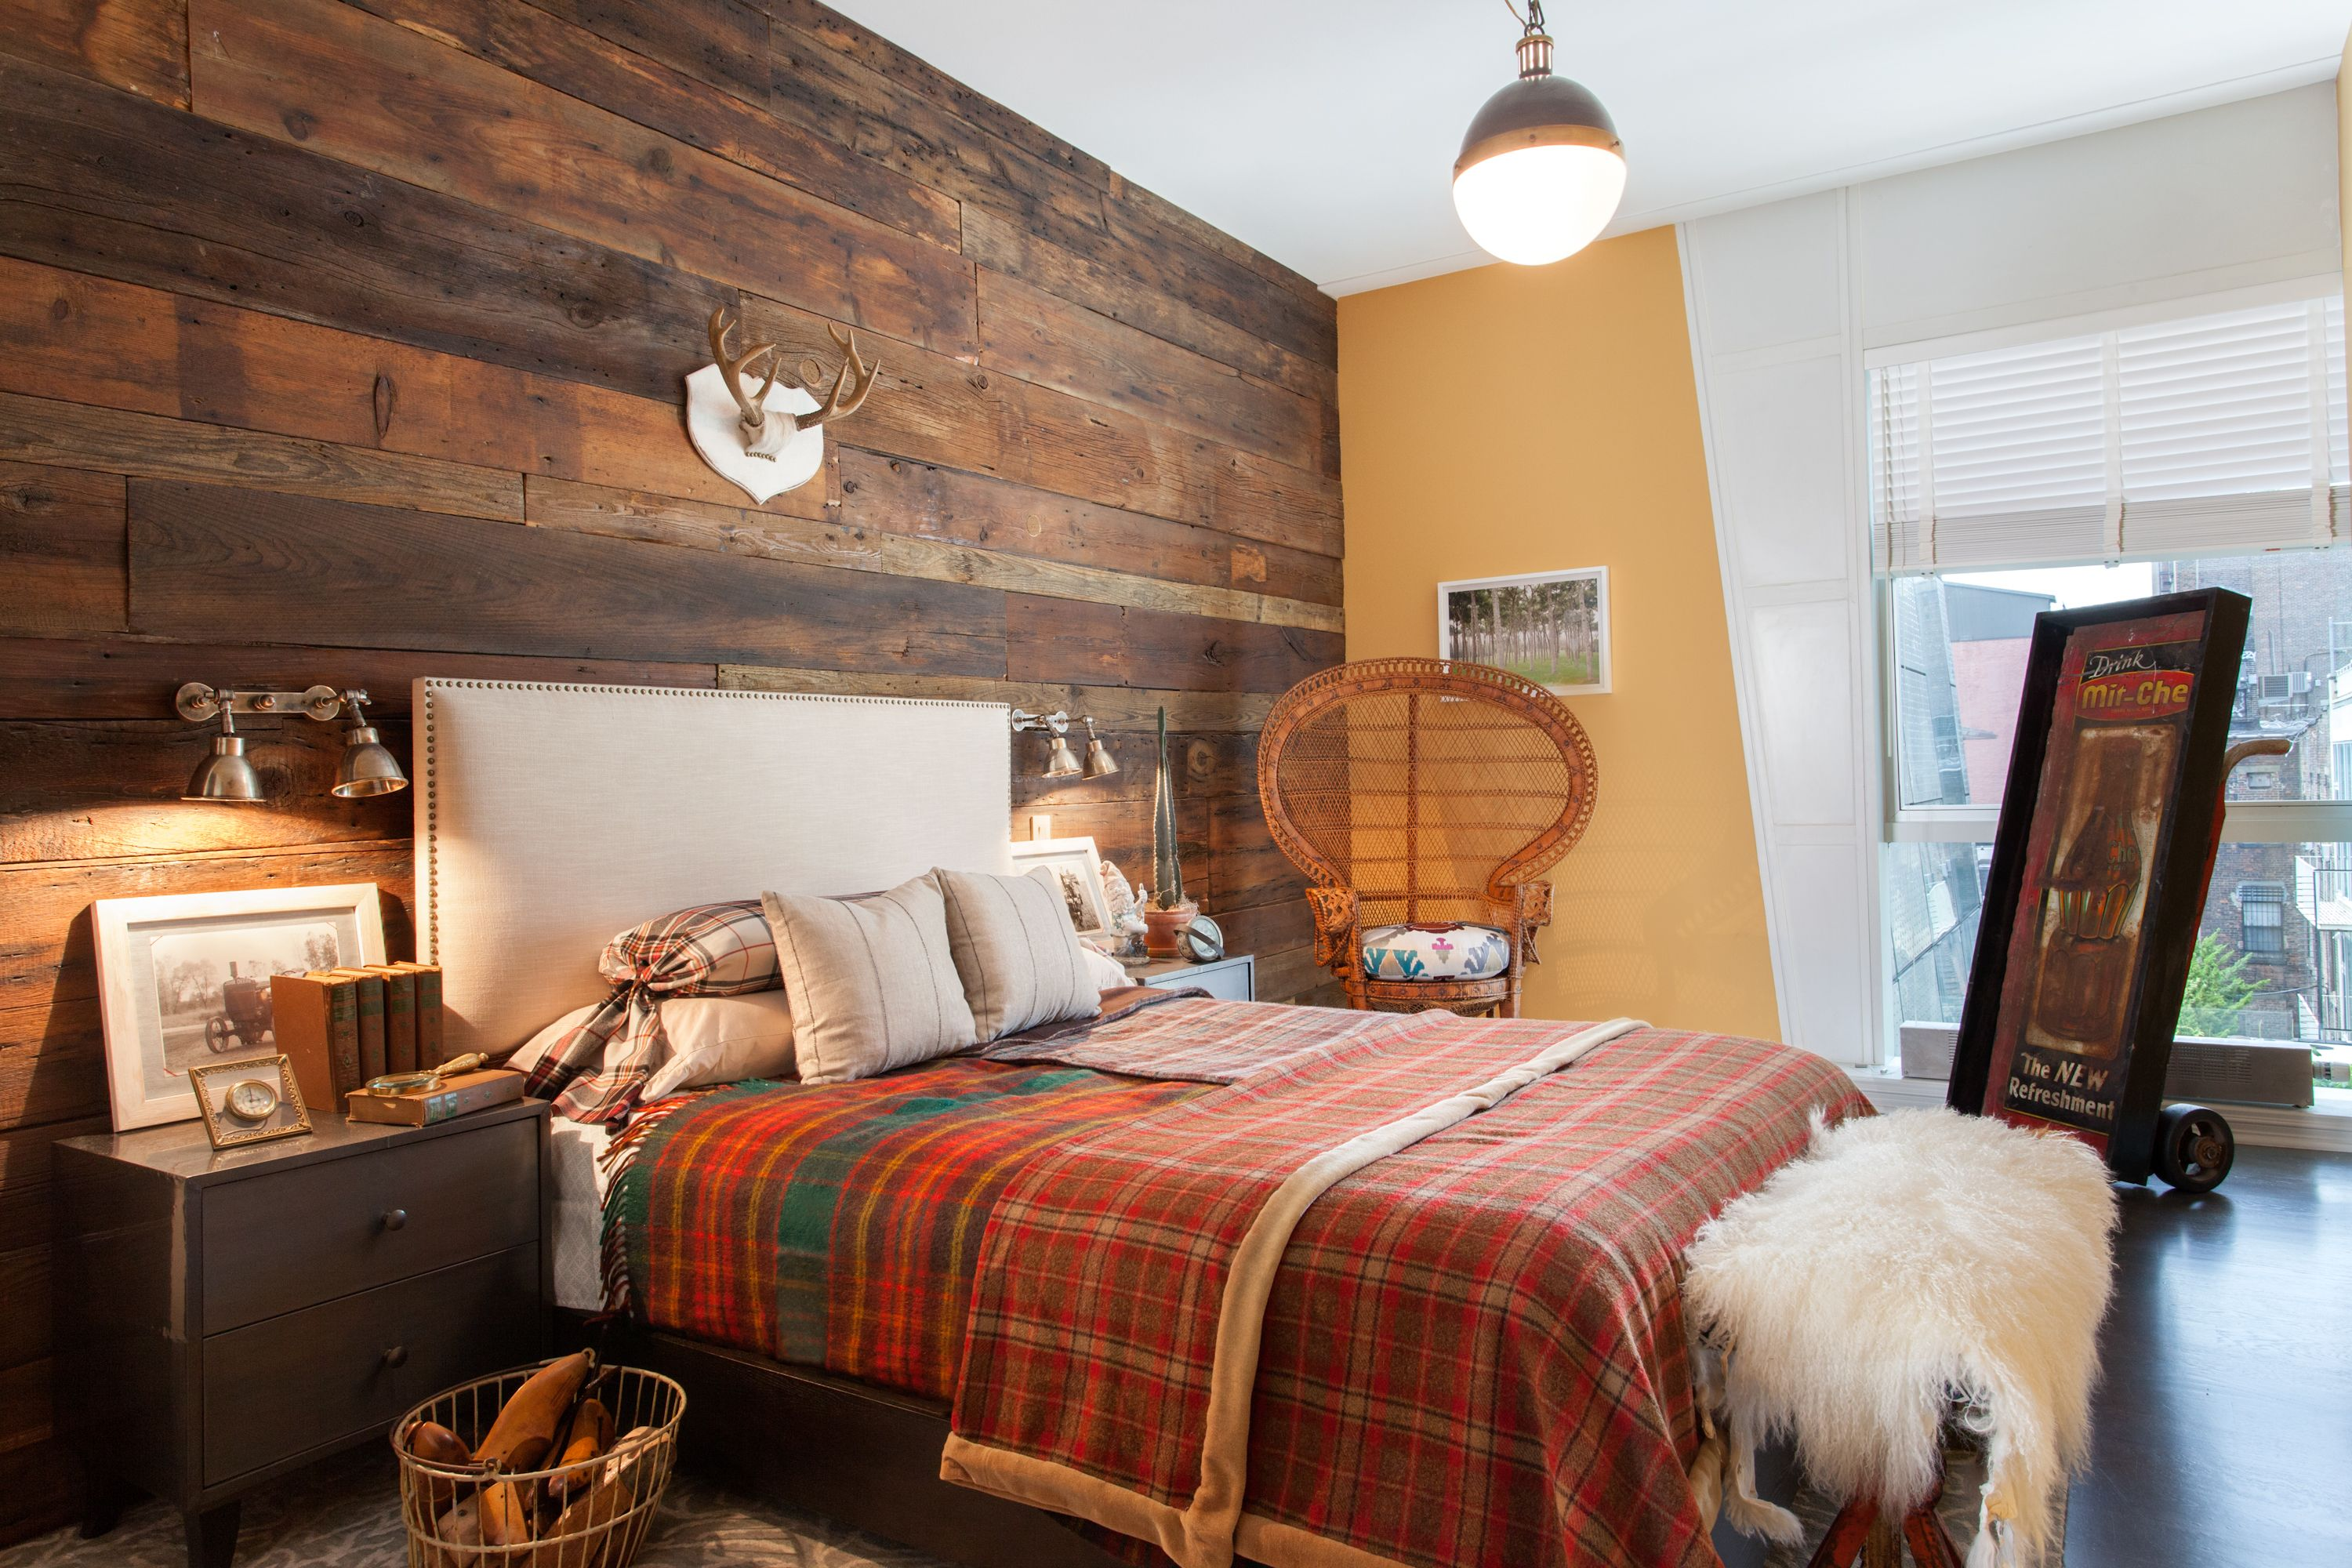 Highline penthouse loft apartment, bedroom, reclaimed wood feature ...